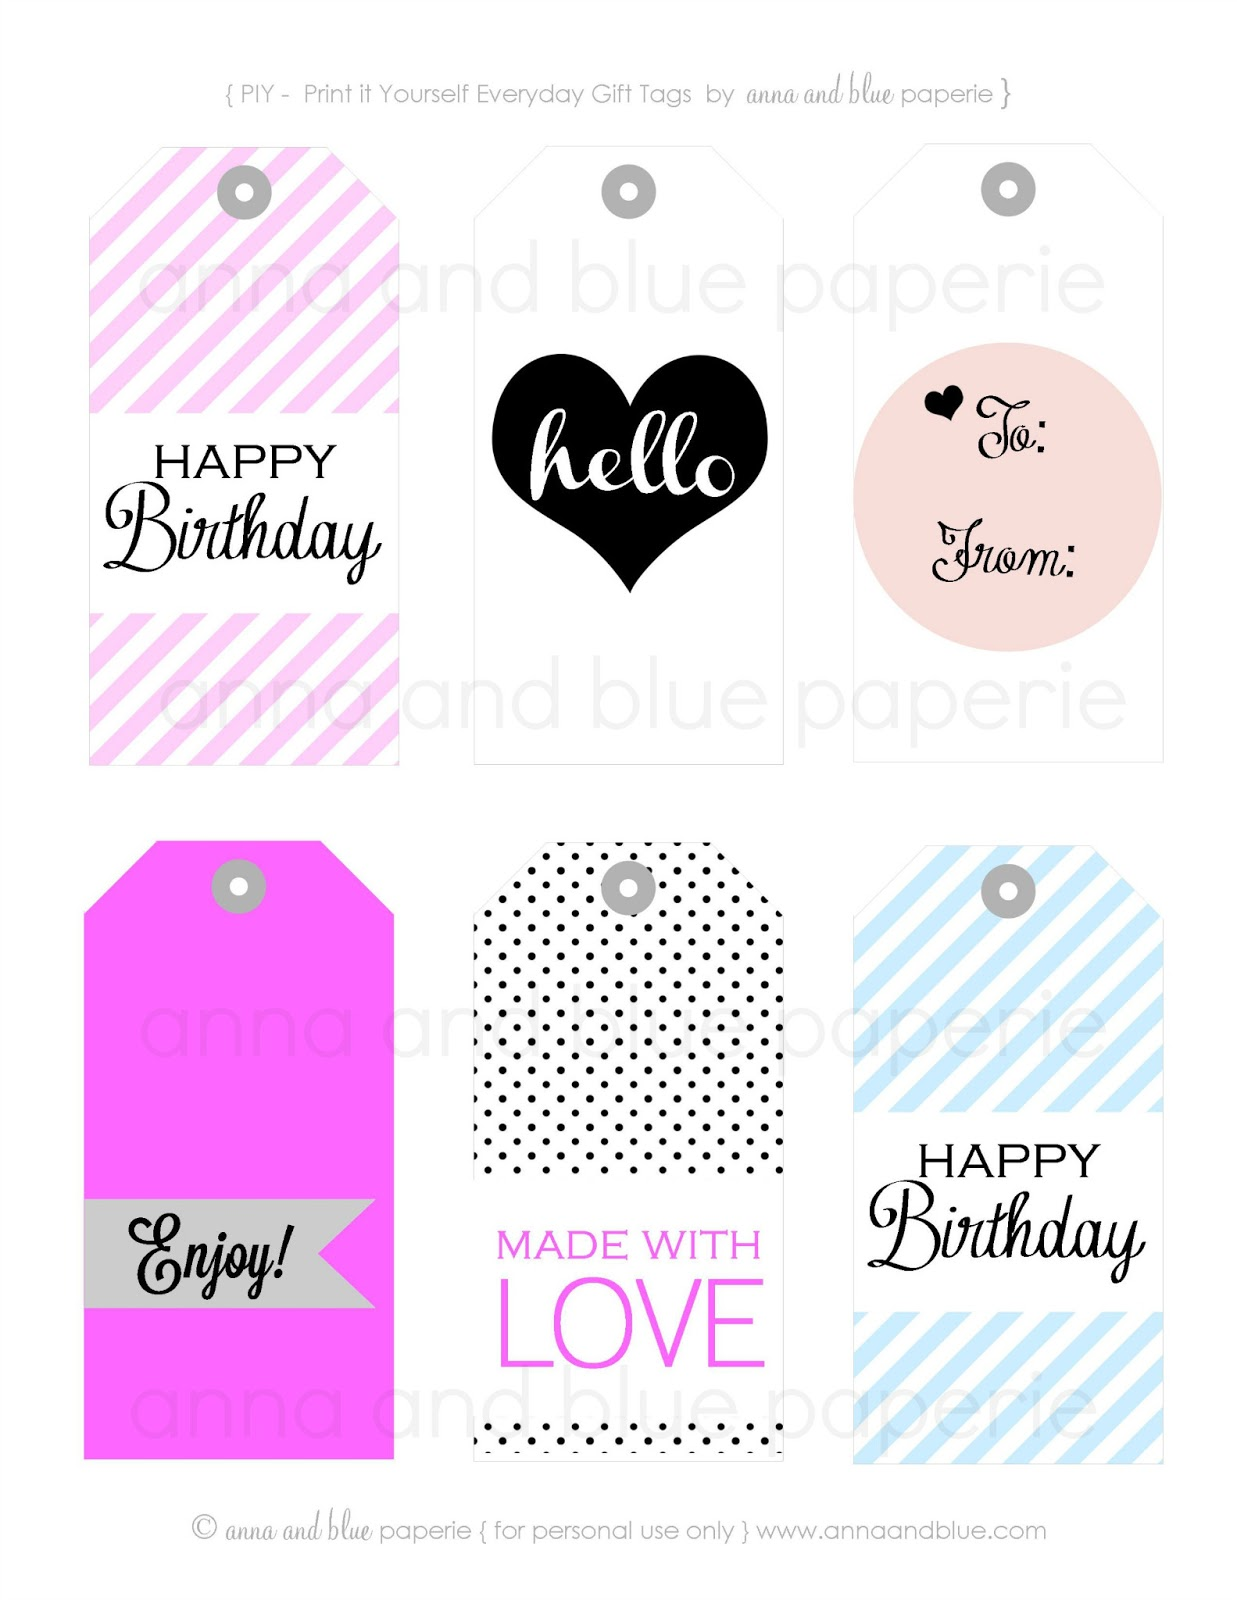 Anna And Blue Paperie: Gift Tags